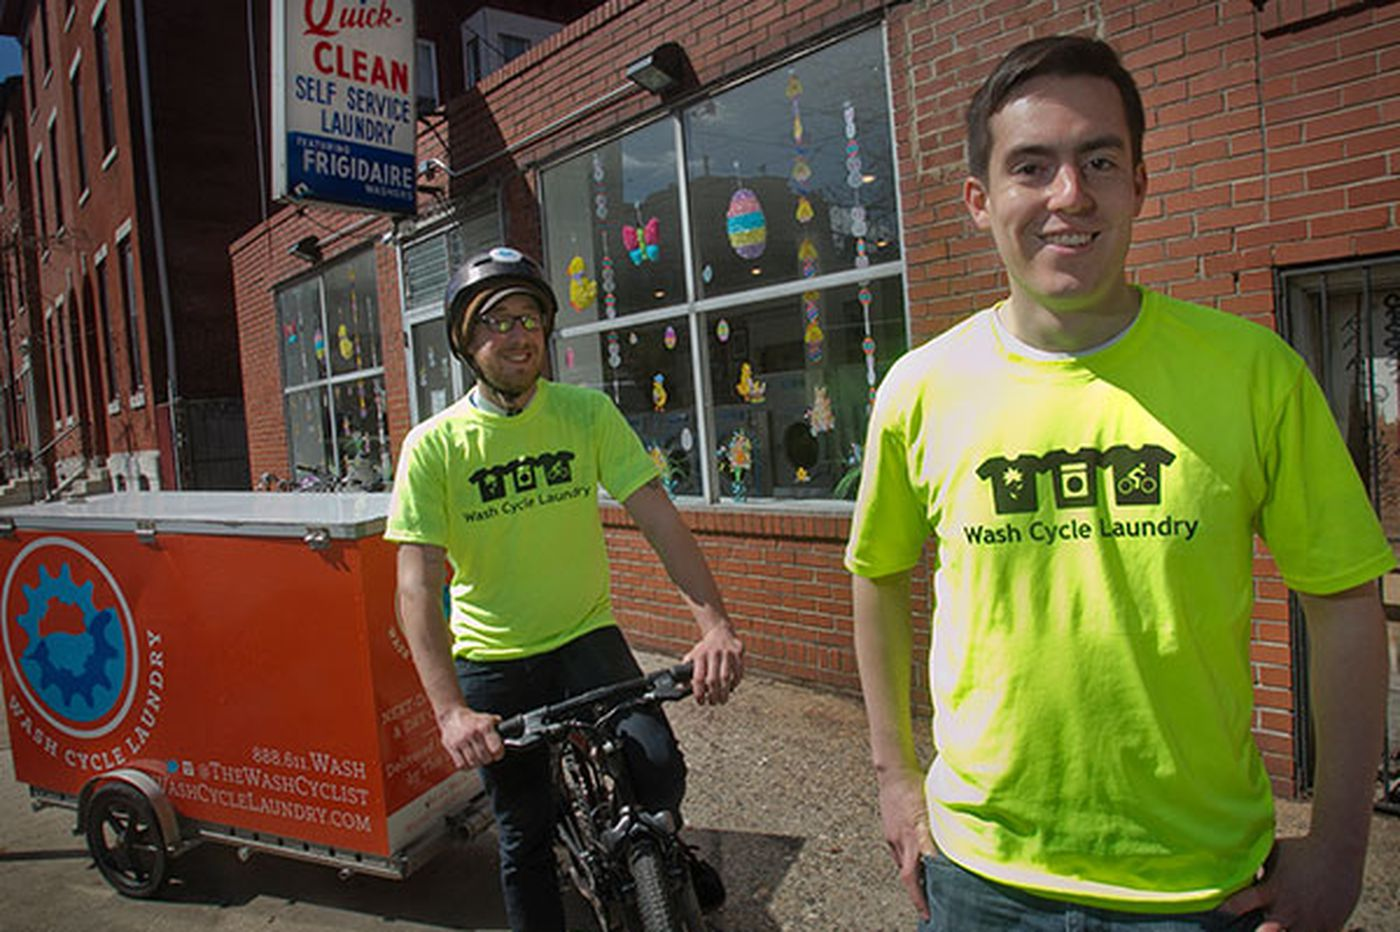 They haul thousands of pounds of laundry on bikes